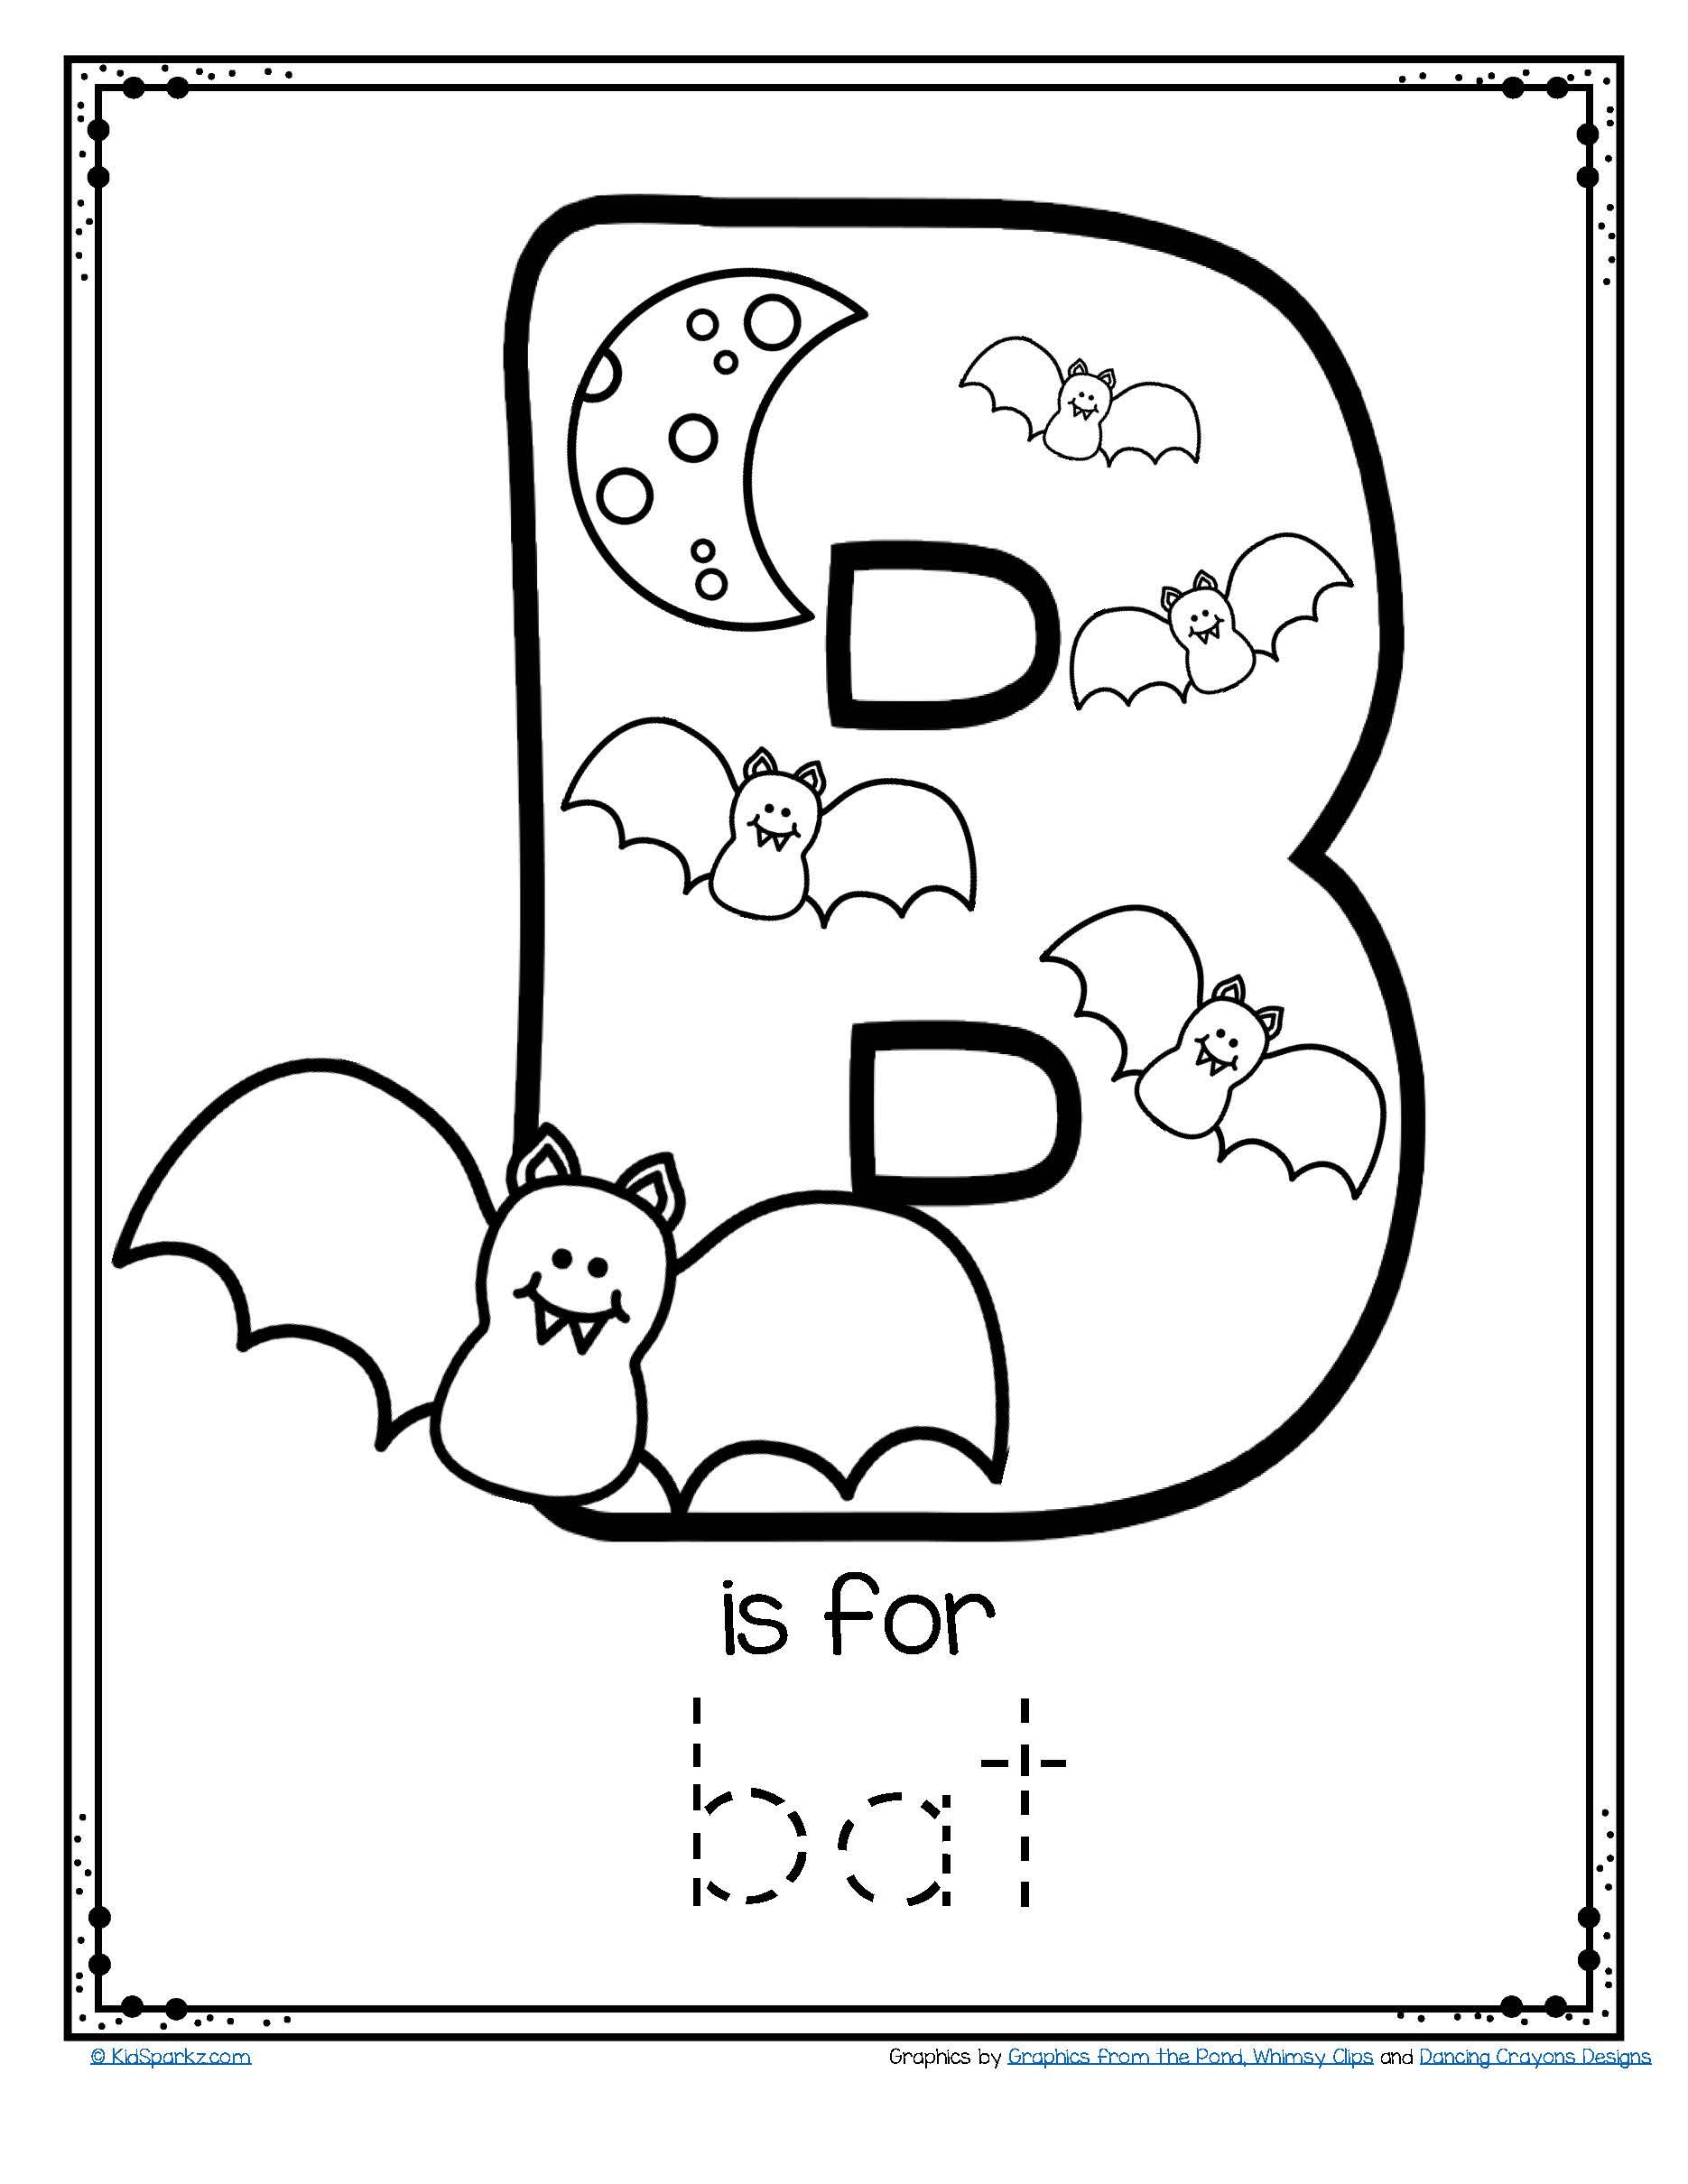 Free Alphabet Tracing And Coloring Printable Is For Theme